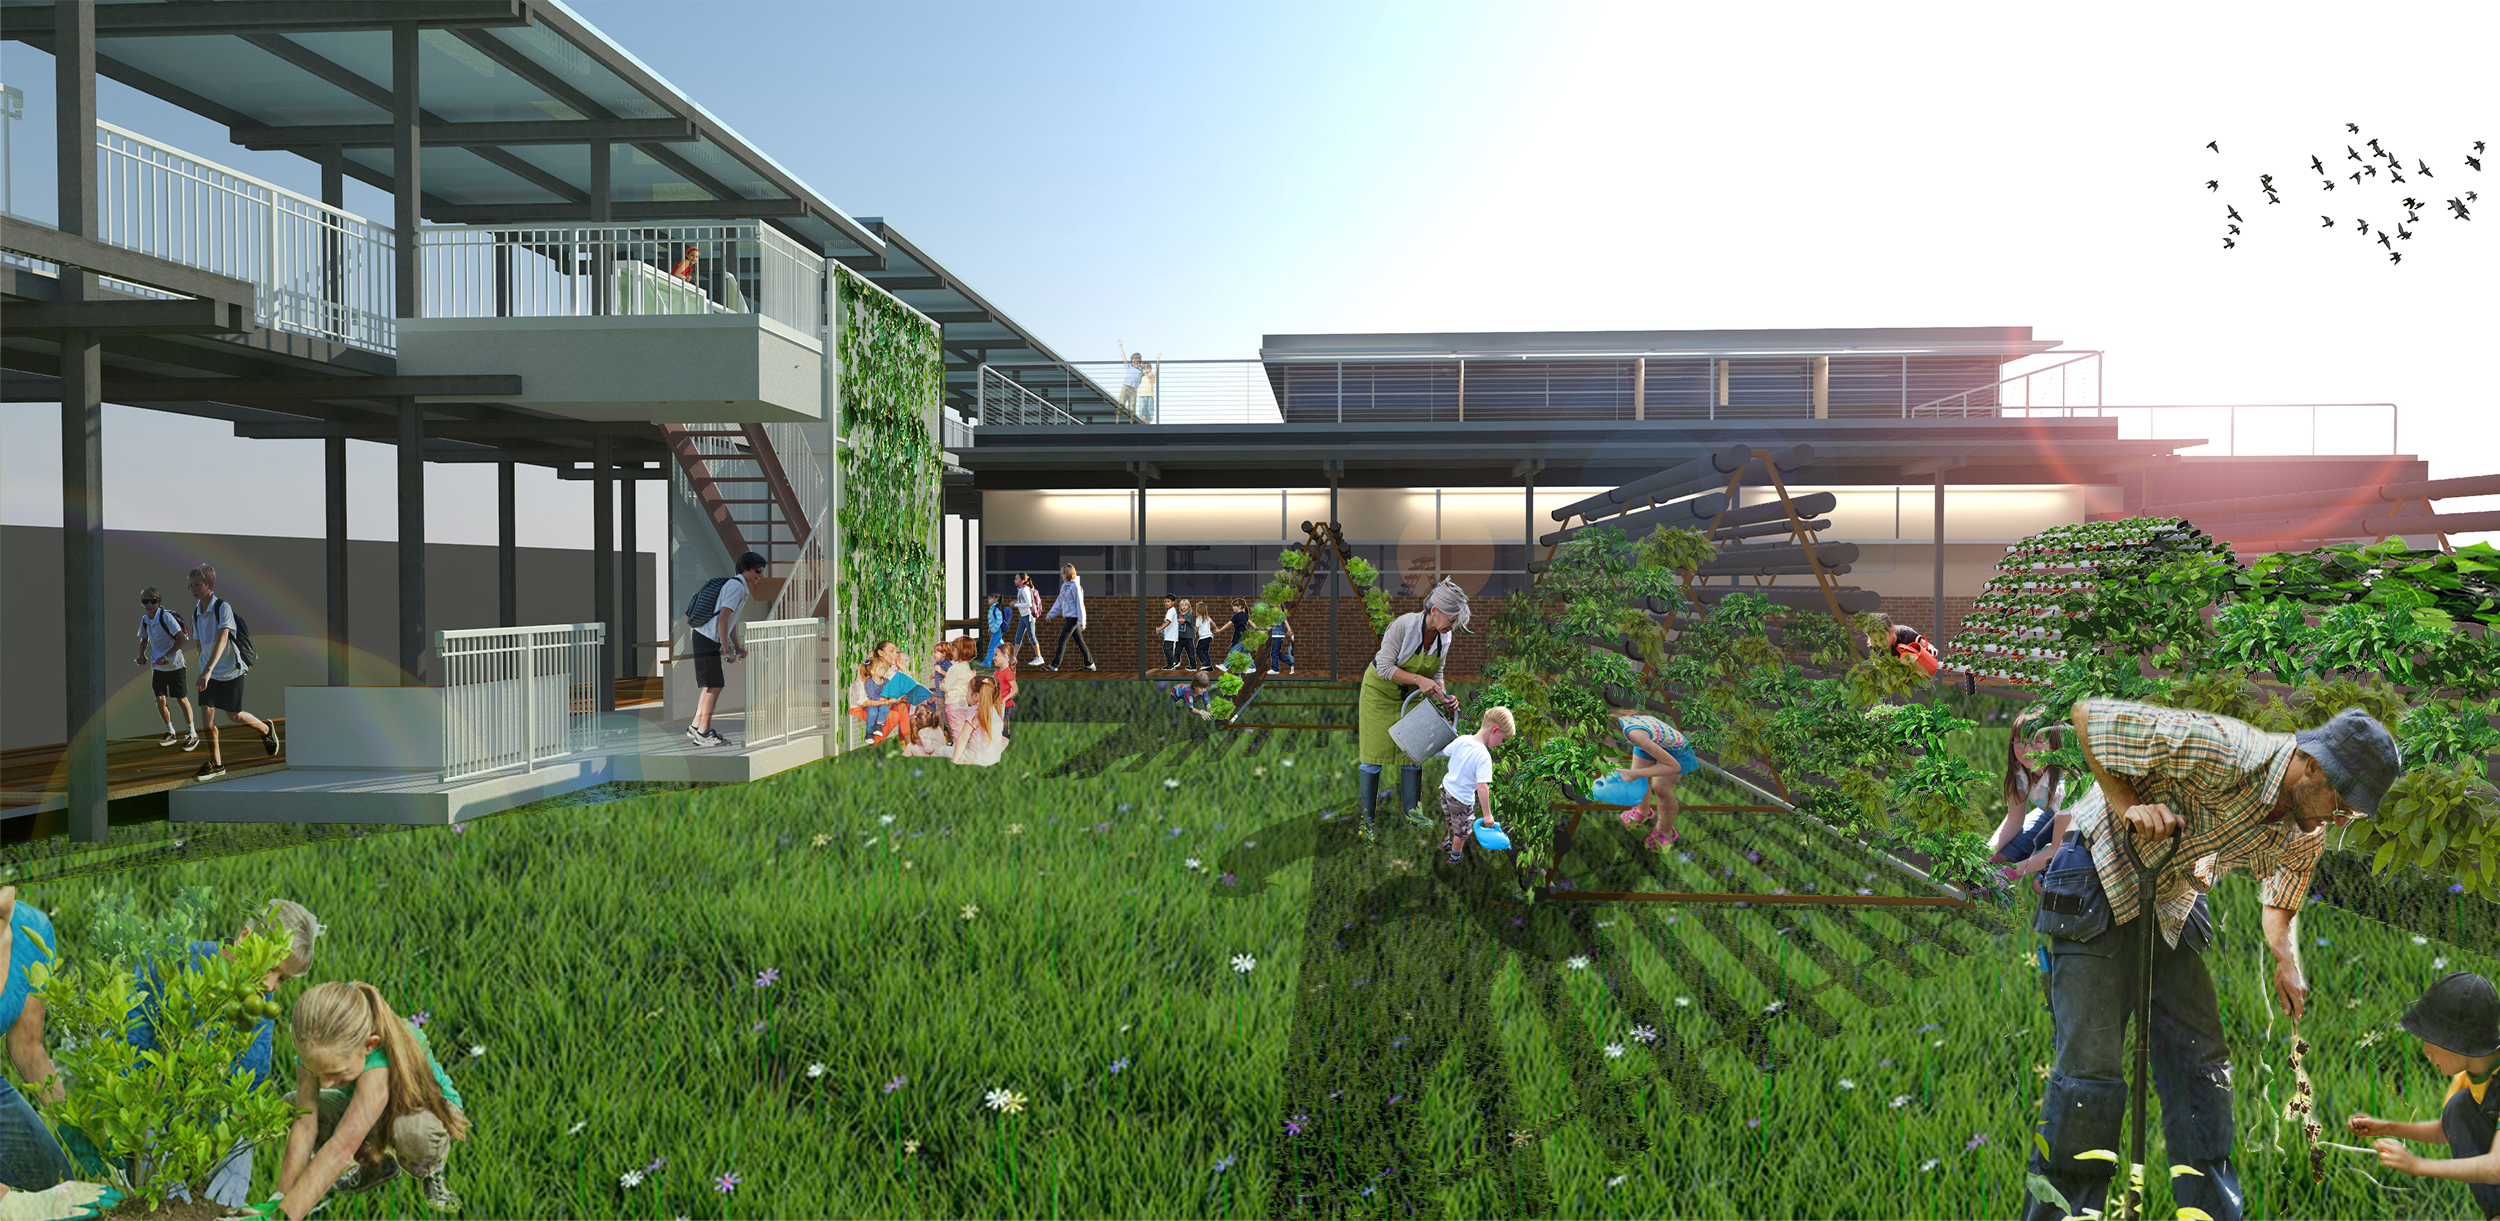 Conceptual ideas provided by University of Louisiana at Lafayette Architecture Students